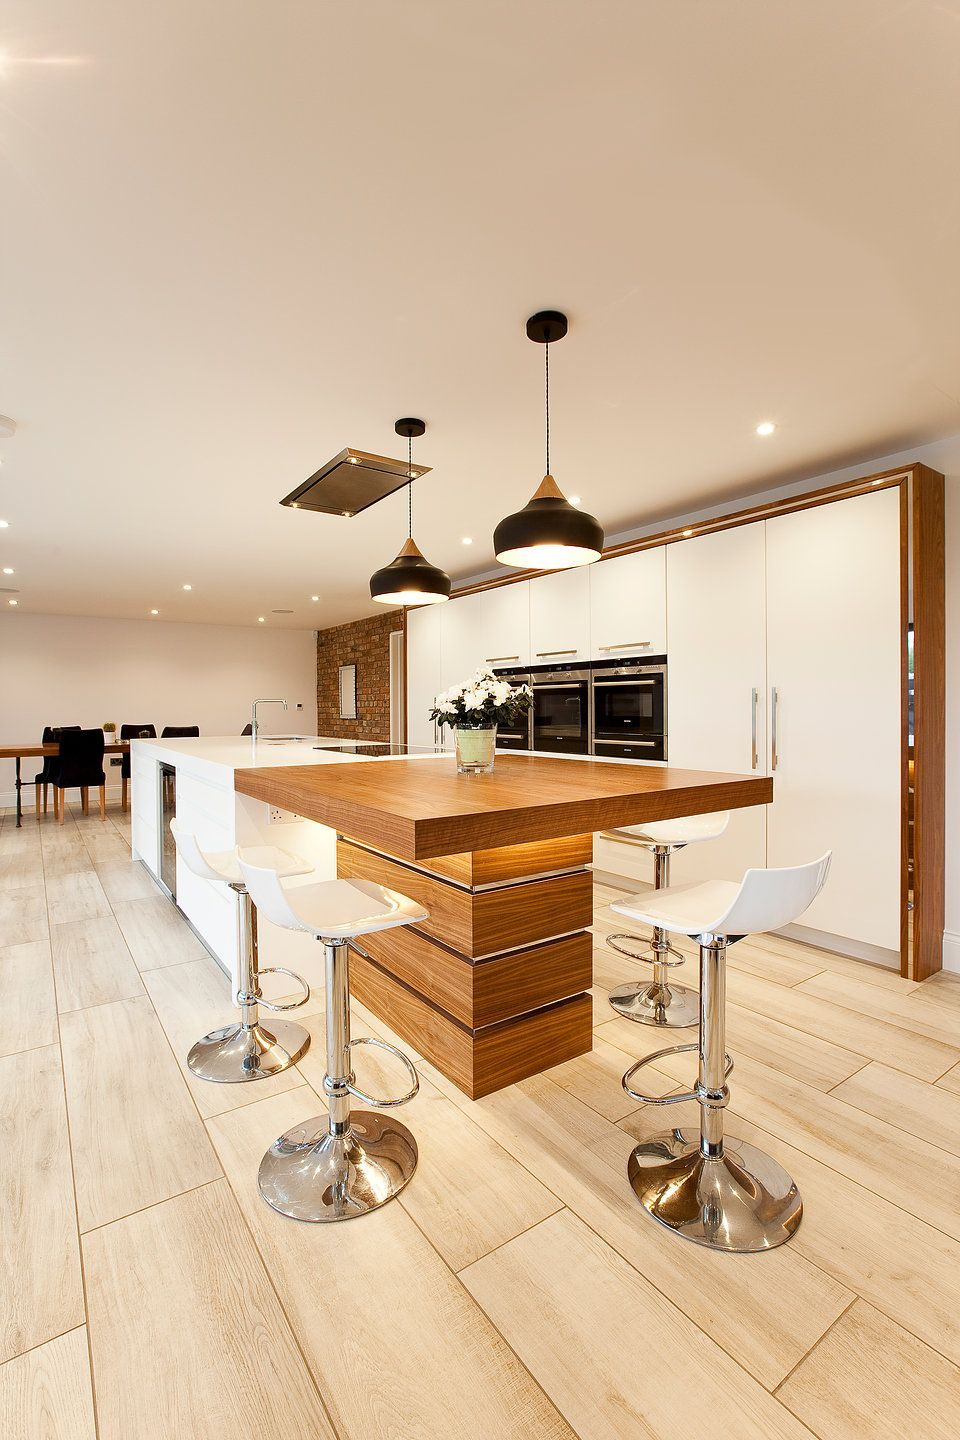 Images Of A Bespoke Contemporary Kitchen Madejamie Robins And Custom Contemporary Kitchen Chairs Design Inspiration